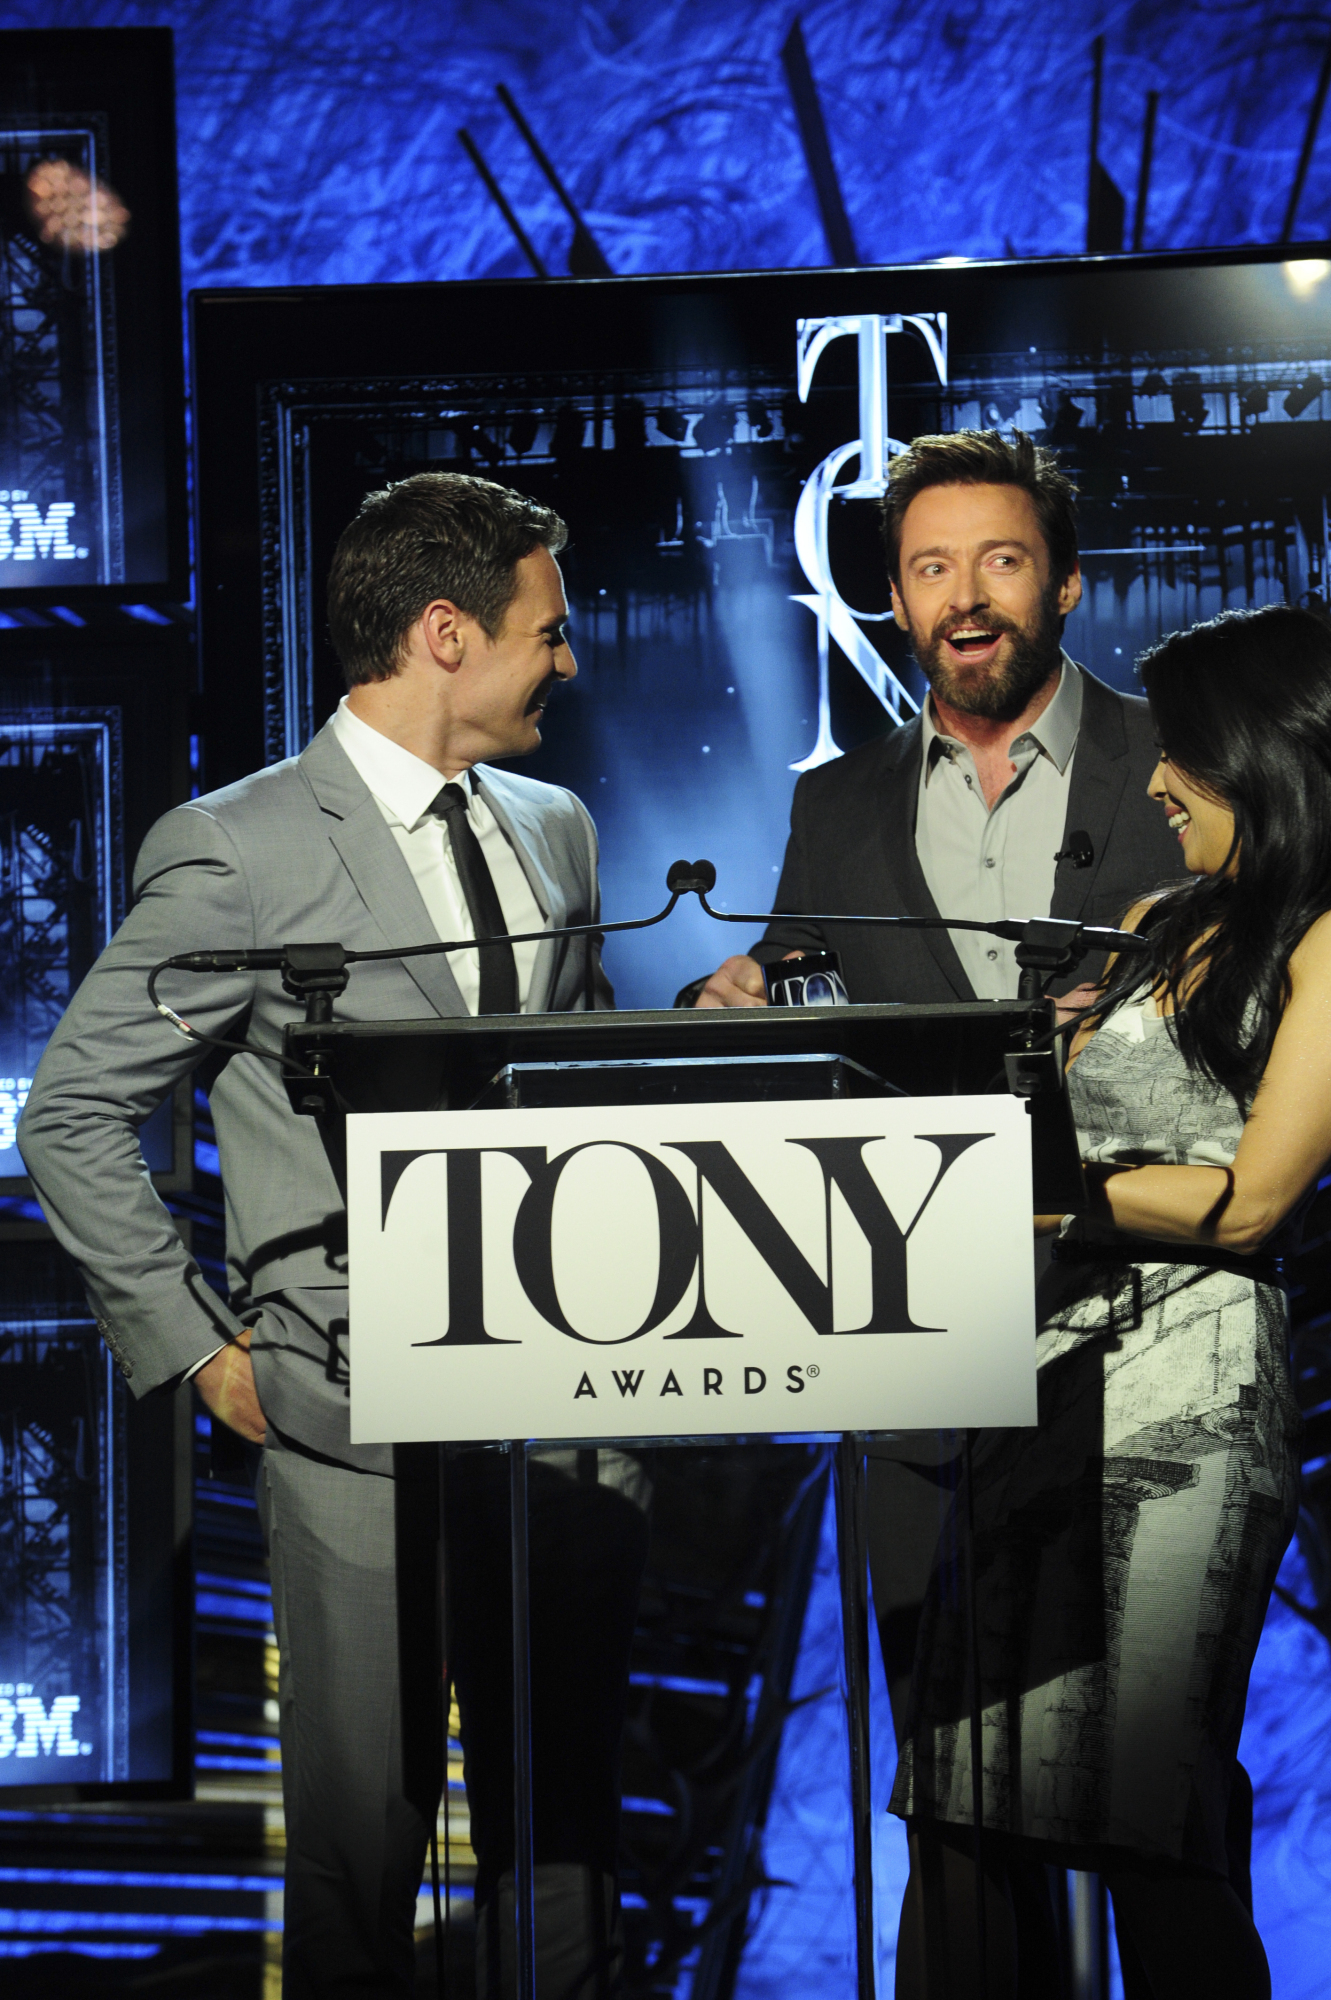 Hugh Jackman surprised the crowd with a pop-up onstage!